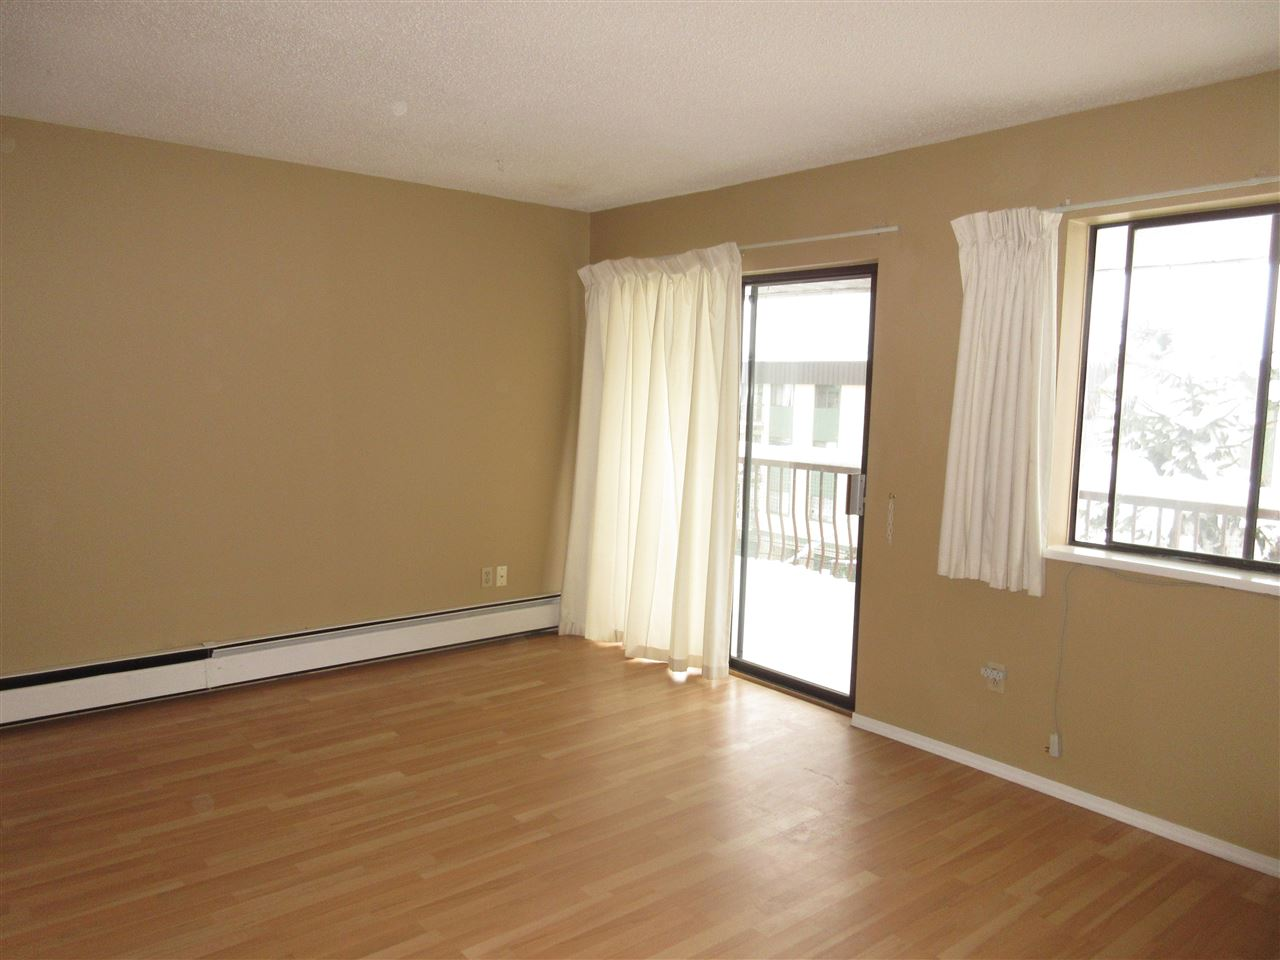 "Photo 3: 309 45749 SPADINA Avenue in Chilliwack: Chilliwack W Young-Well Condo for sale in ""CHILLIWACK GARDENS"" : MLS(r) # R2137266"